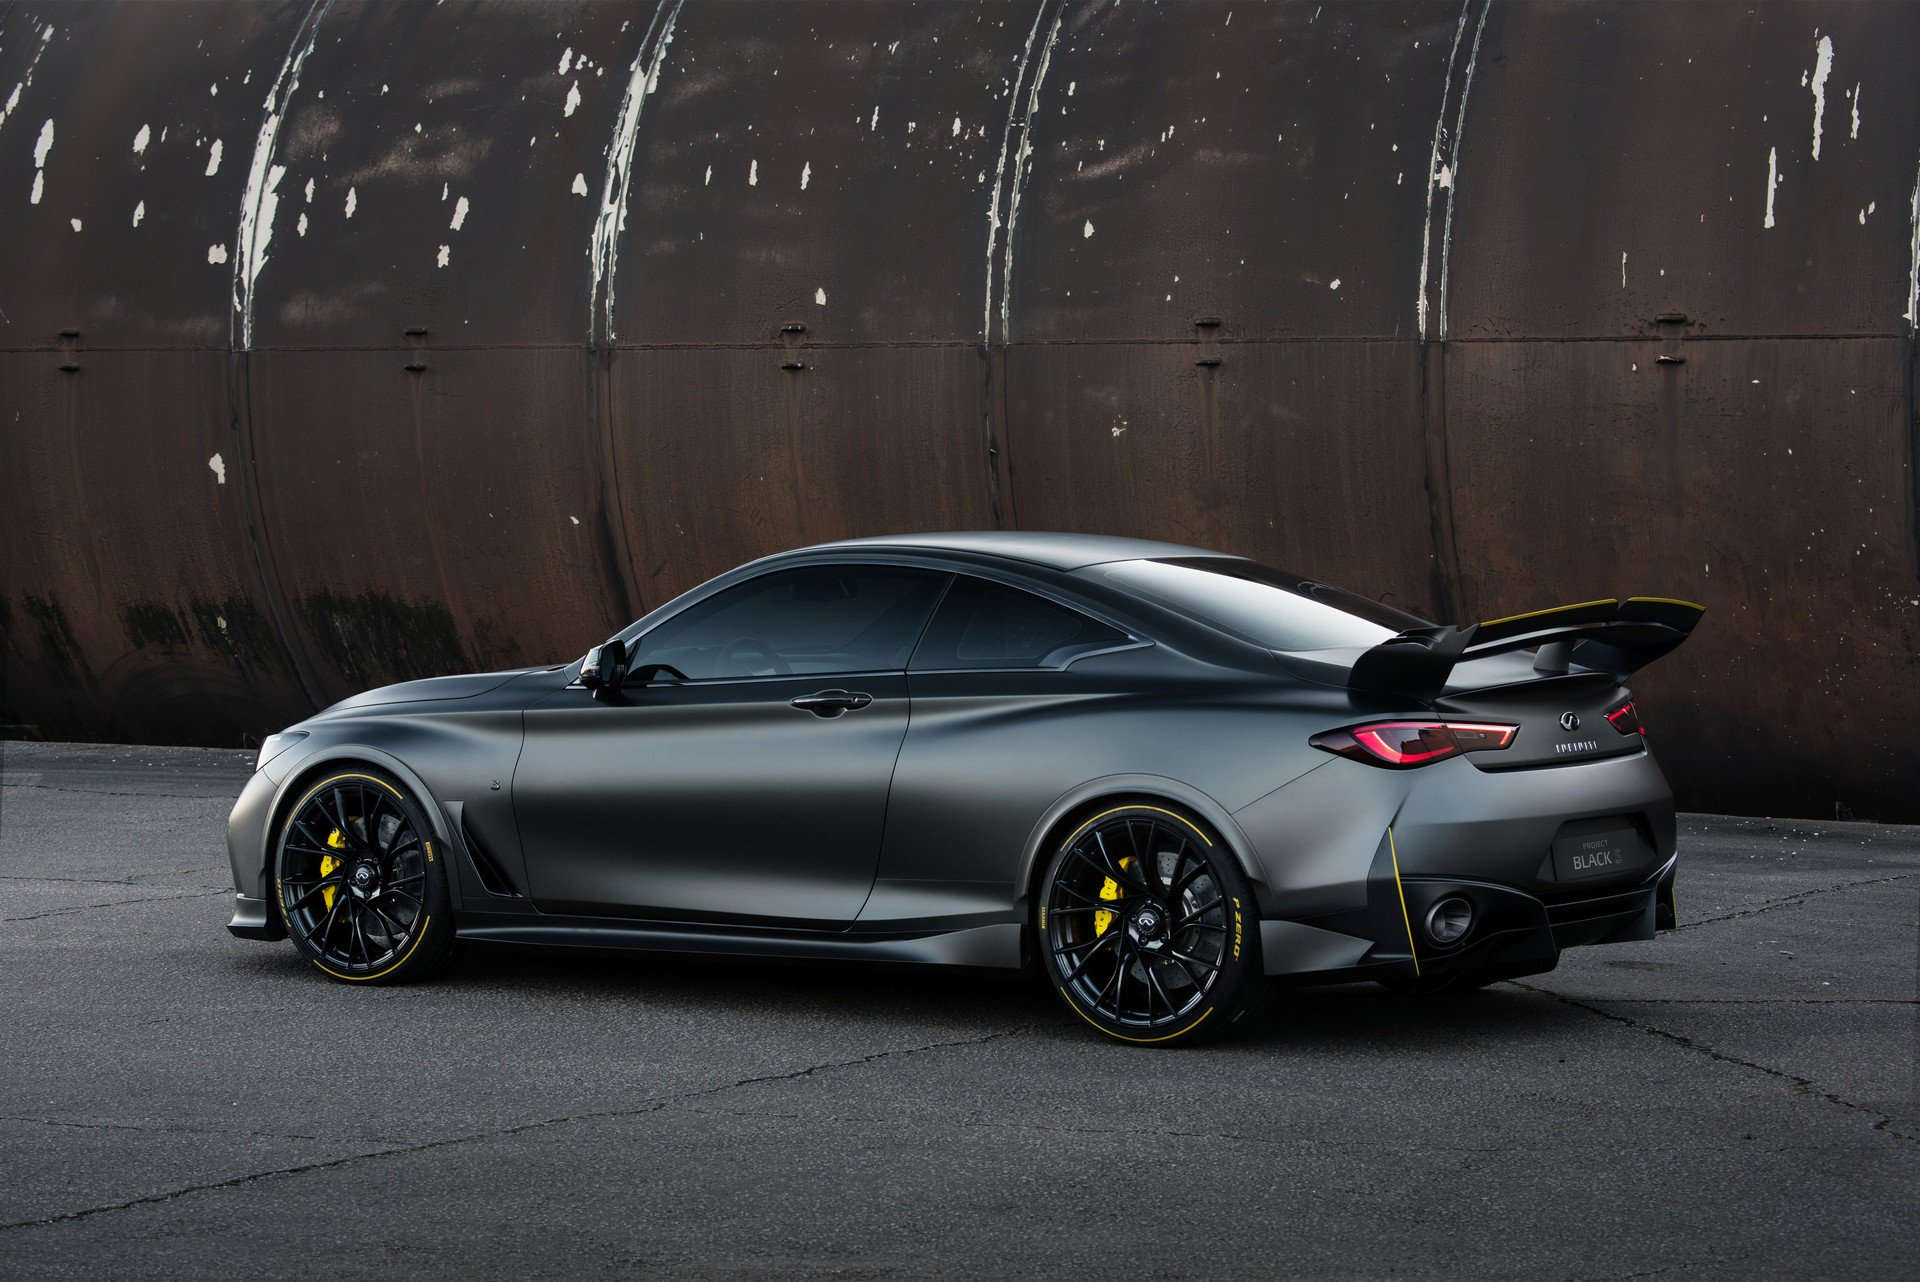 Infiniti Project Black S Prototype (15)